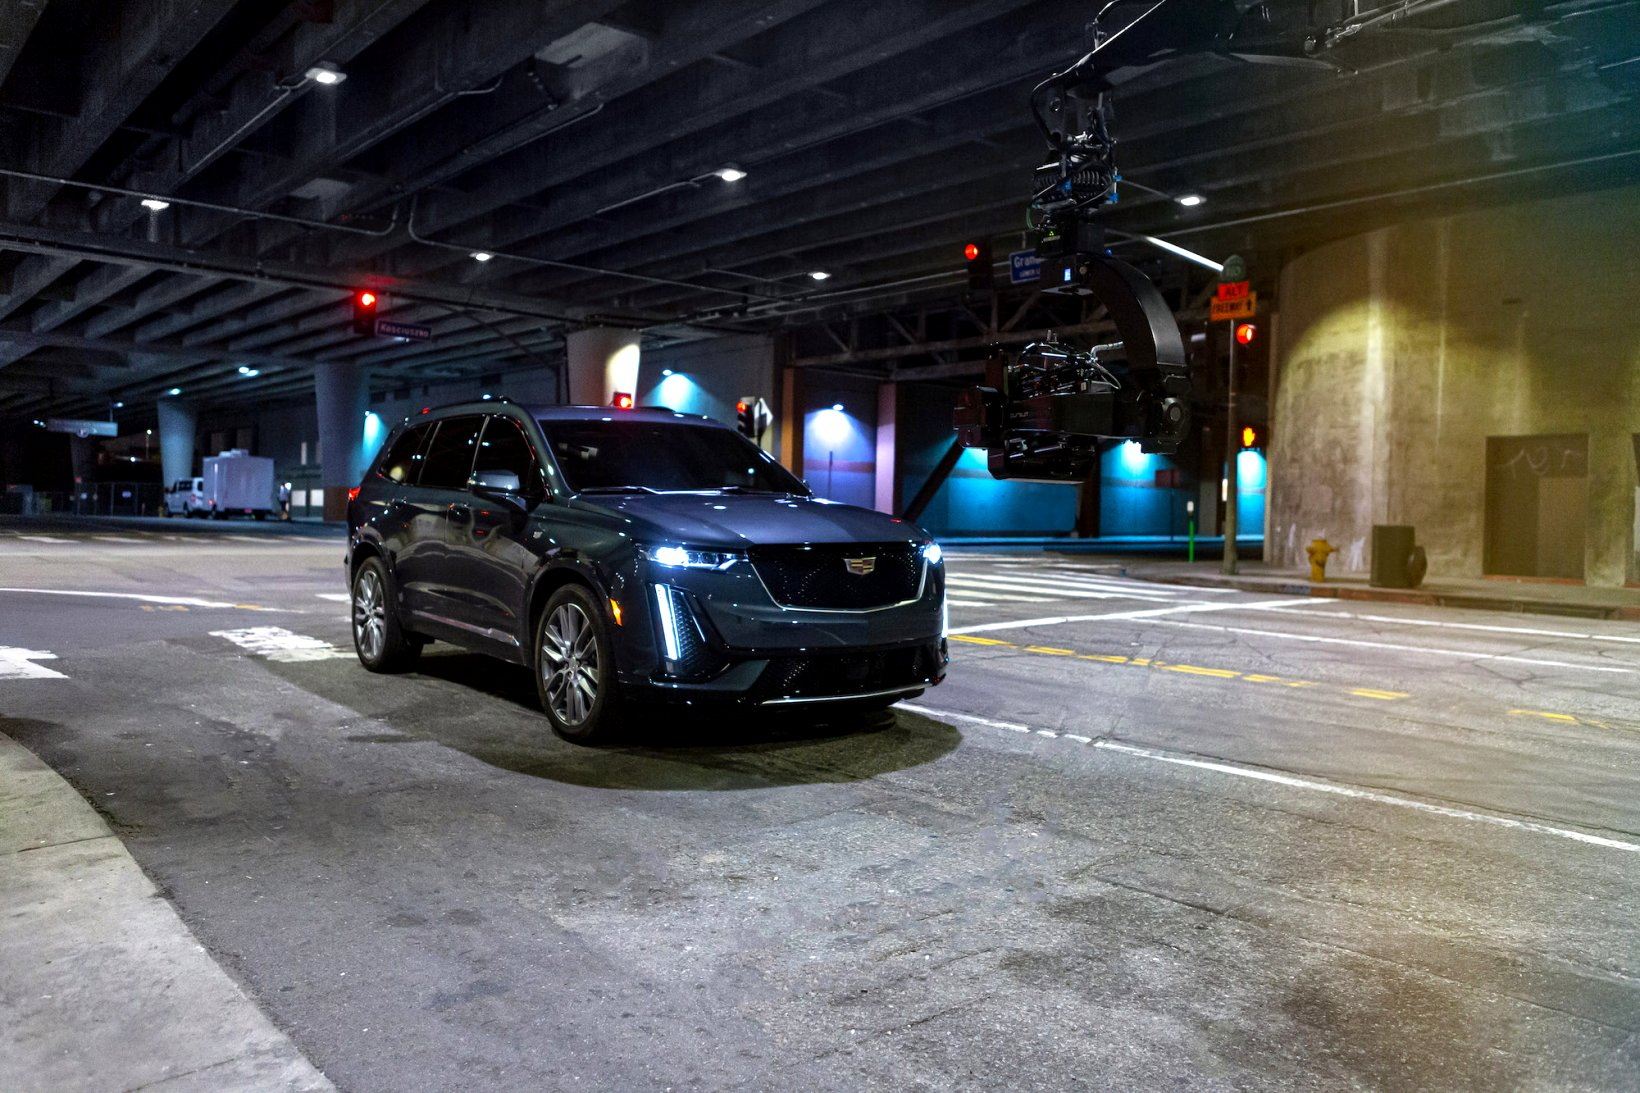 cadillac commercial song july 2020 Model